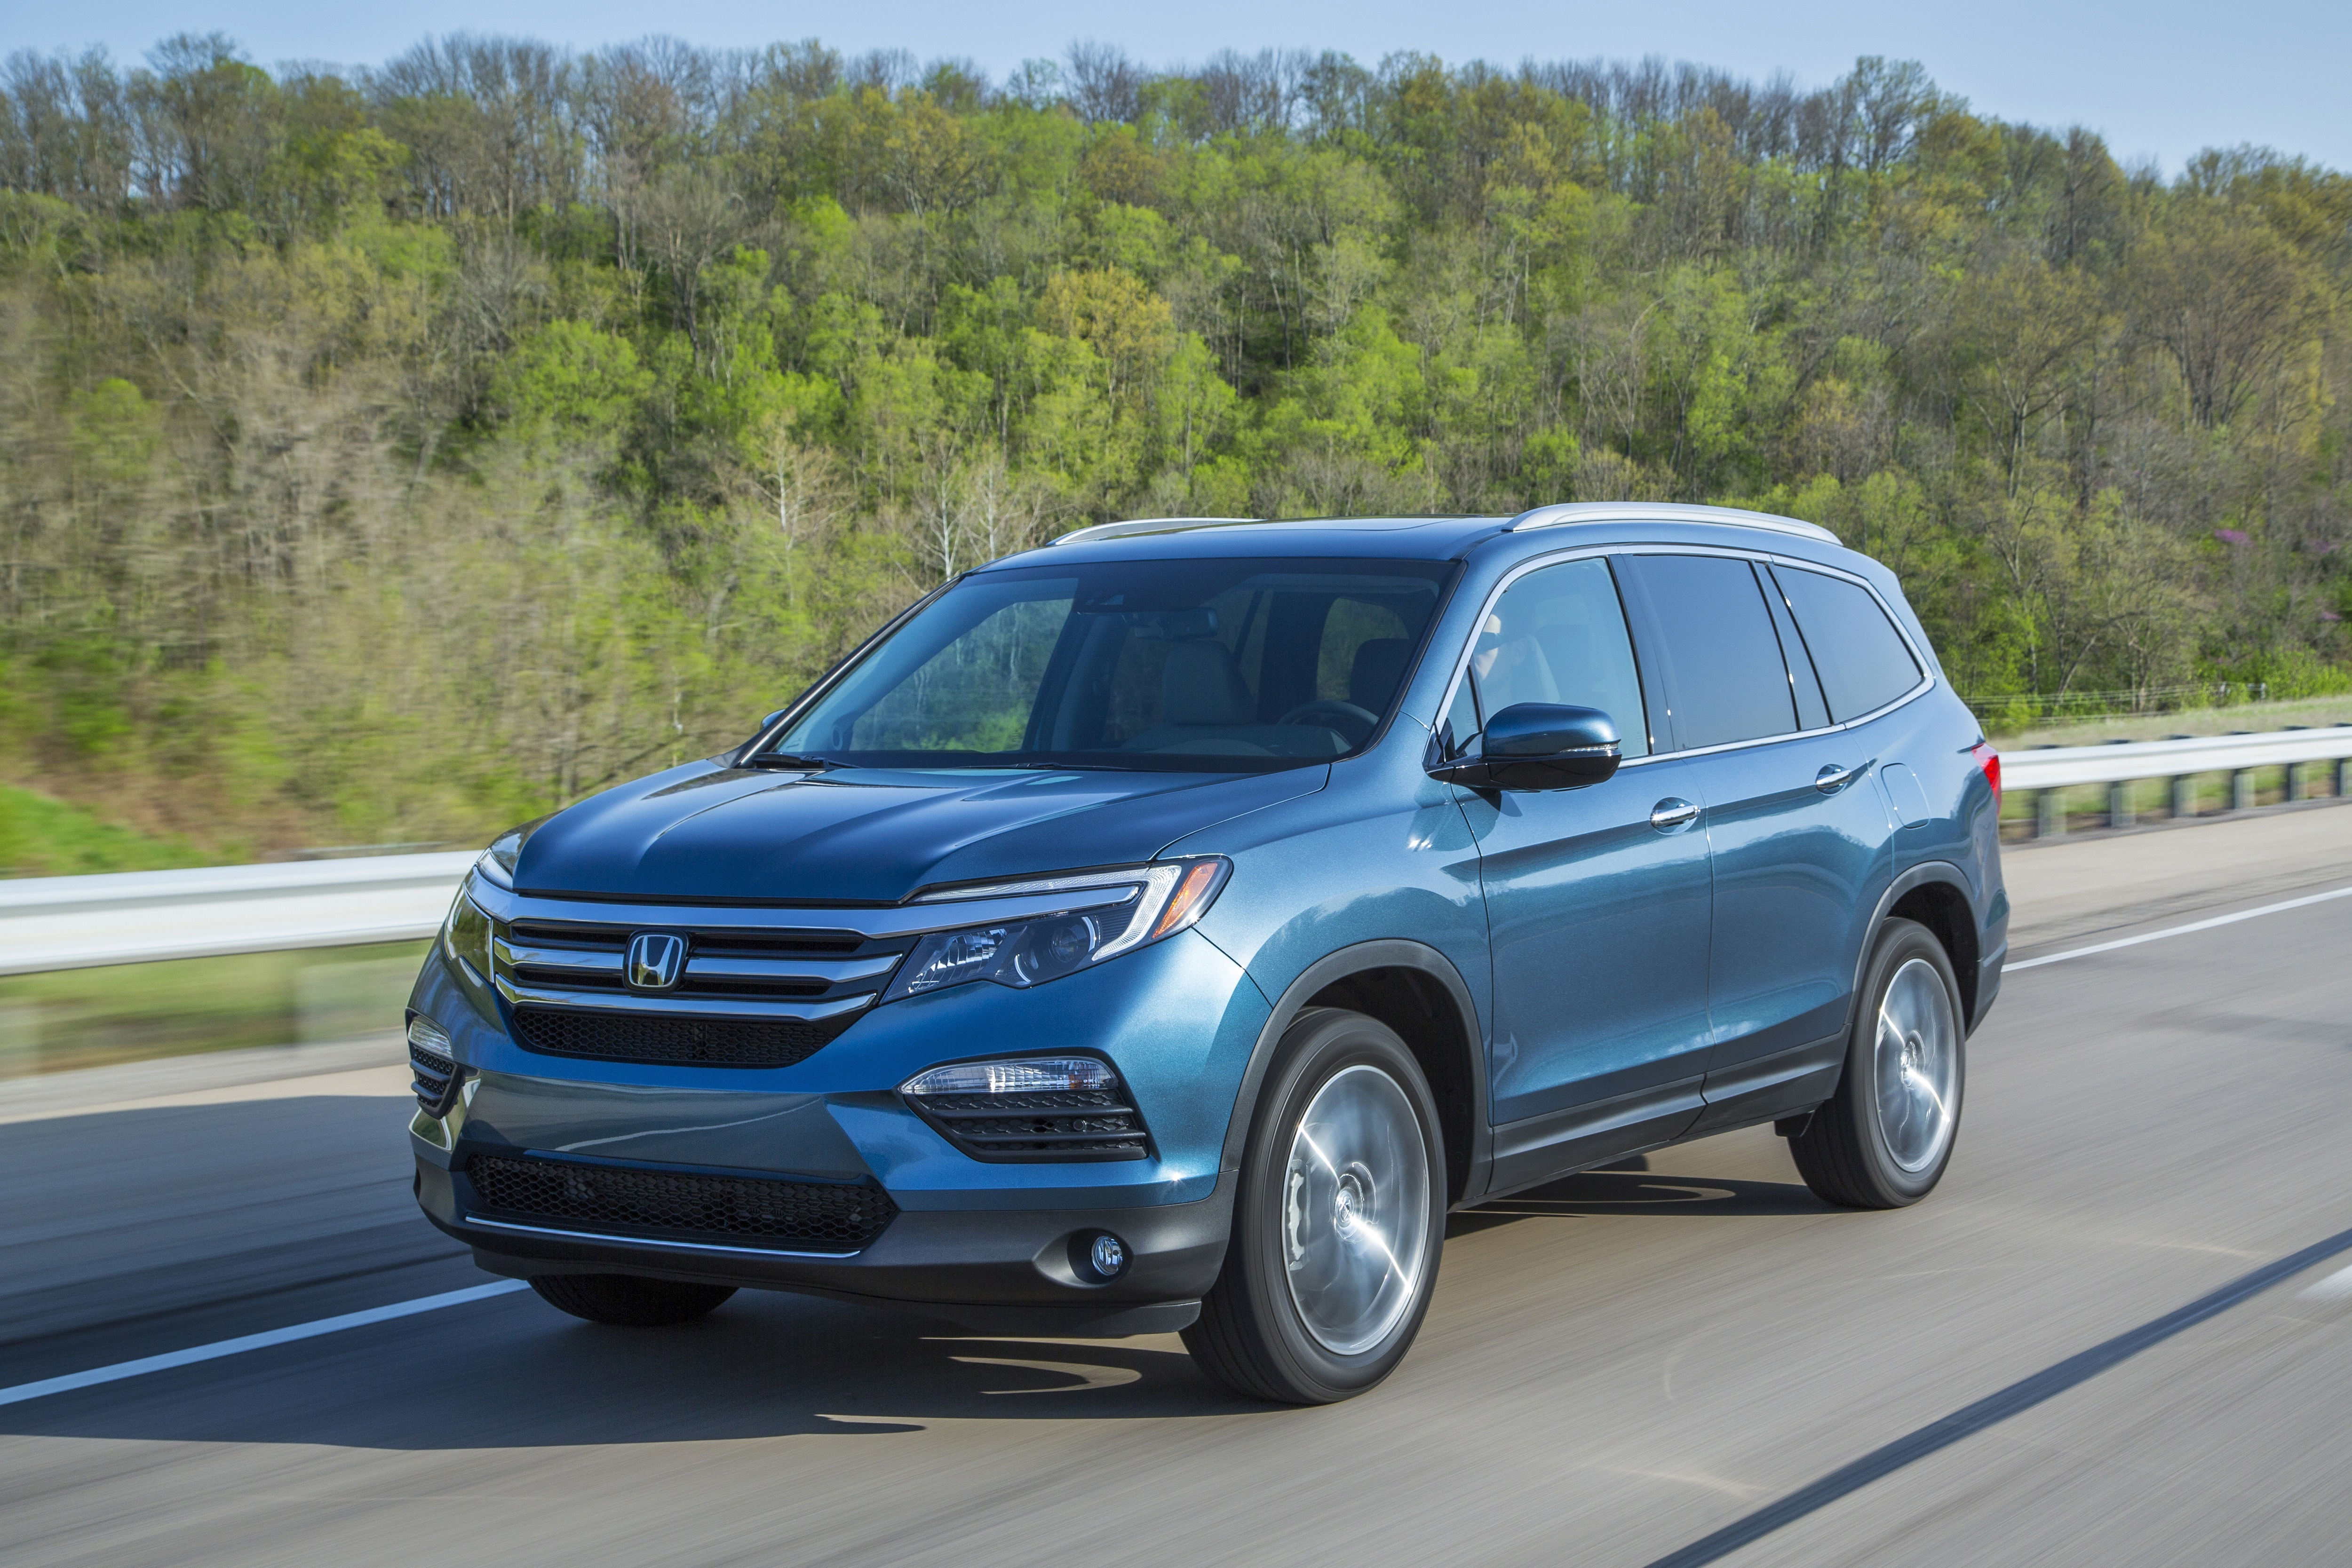 honda s redesigned 2016 pilot set to land in pittsburgh. Black Bedroom Furniture Sets. Home Design Ideas